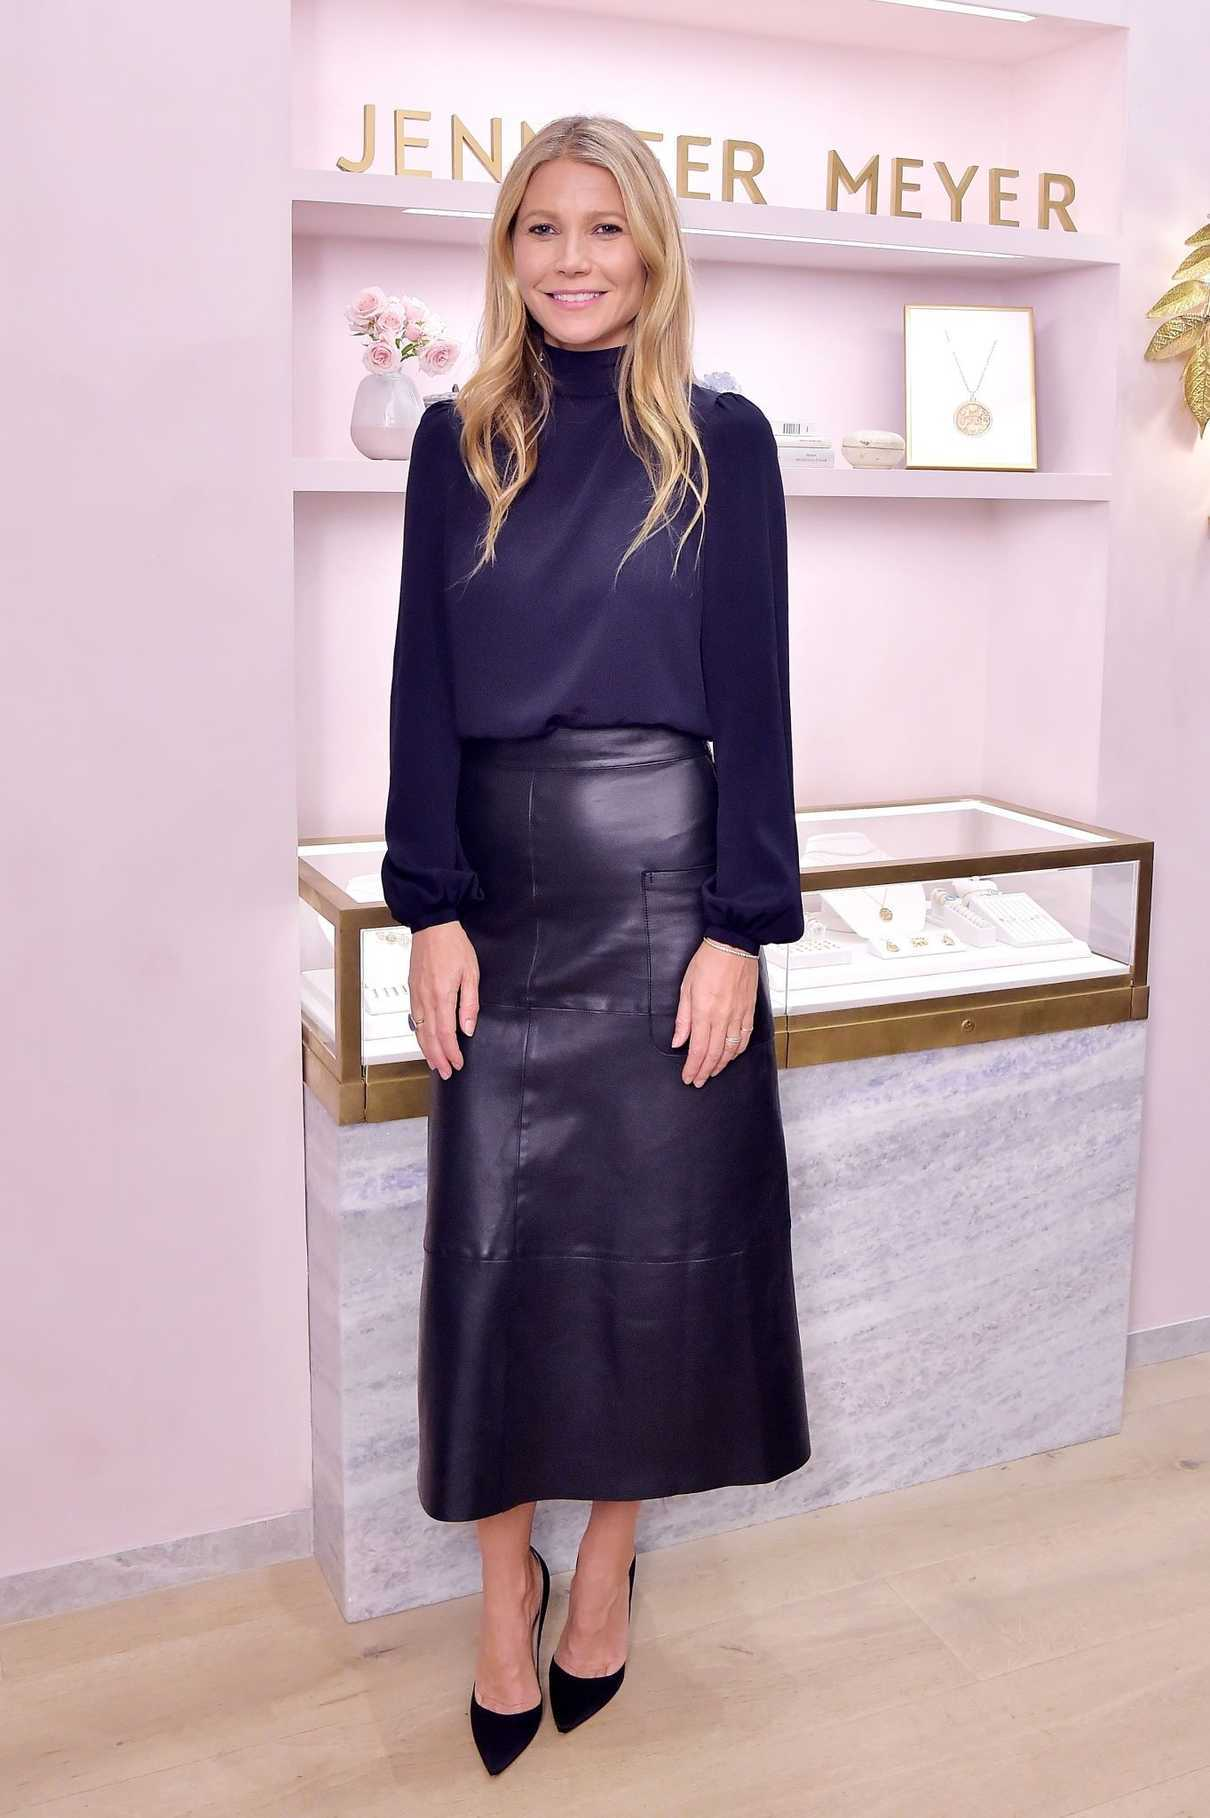 Gwyneth Paltrow Attends Jennifer Meyer Celebrates First Store Opening in Palisades Village 10/17/2018